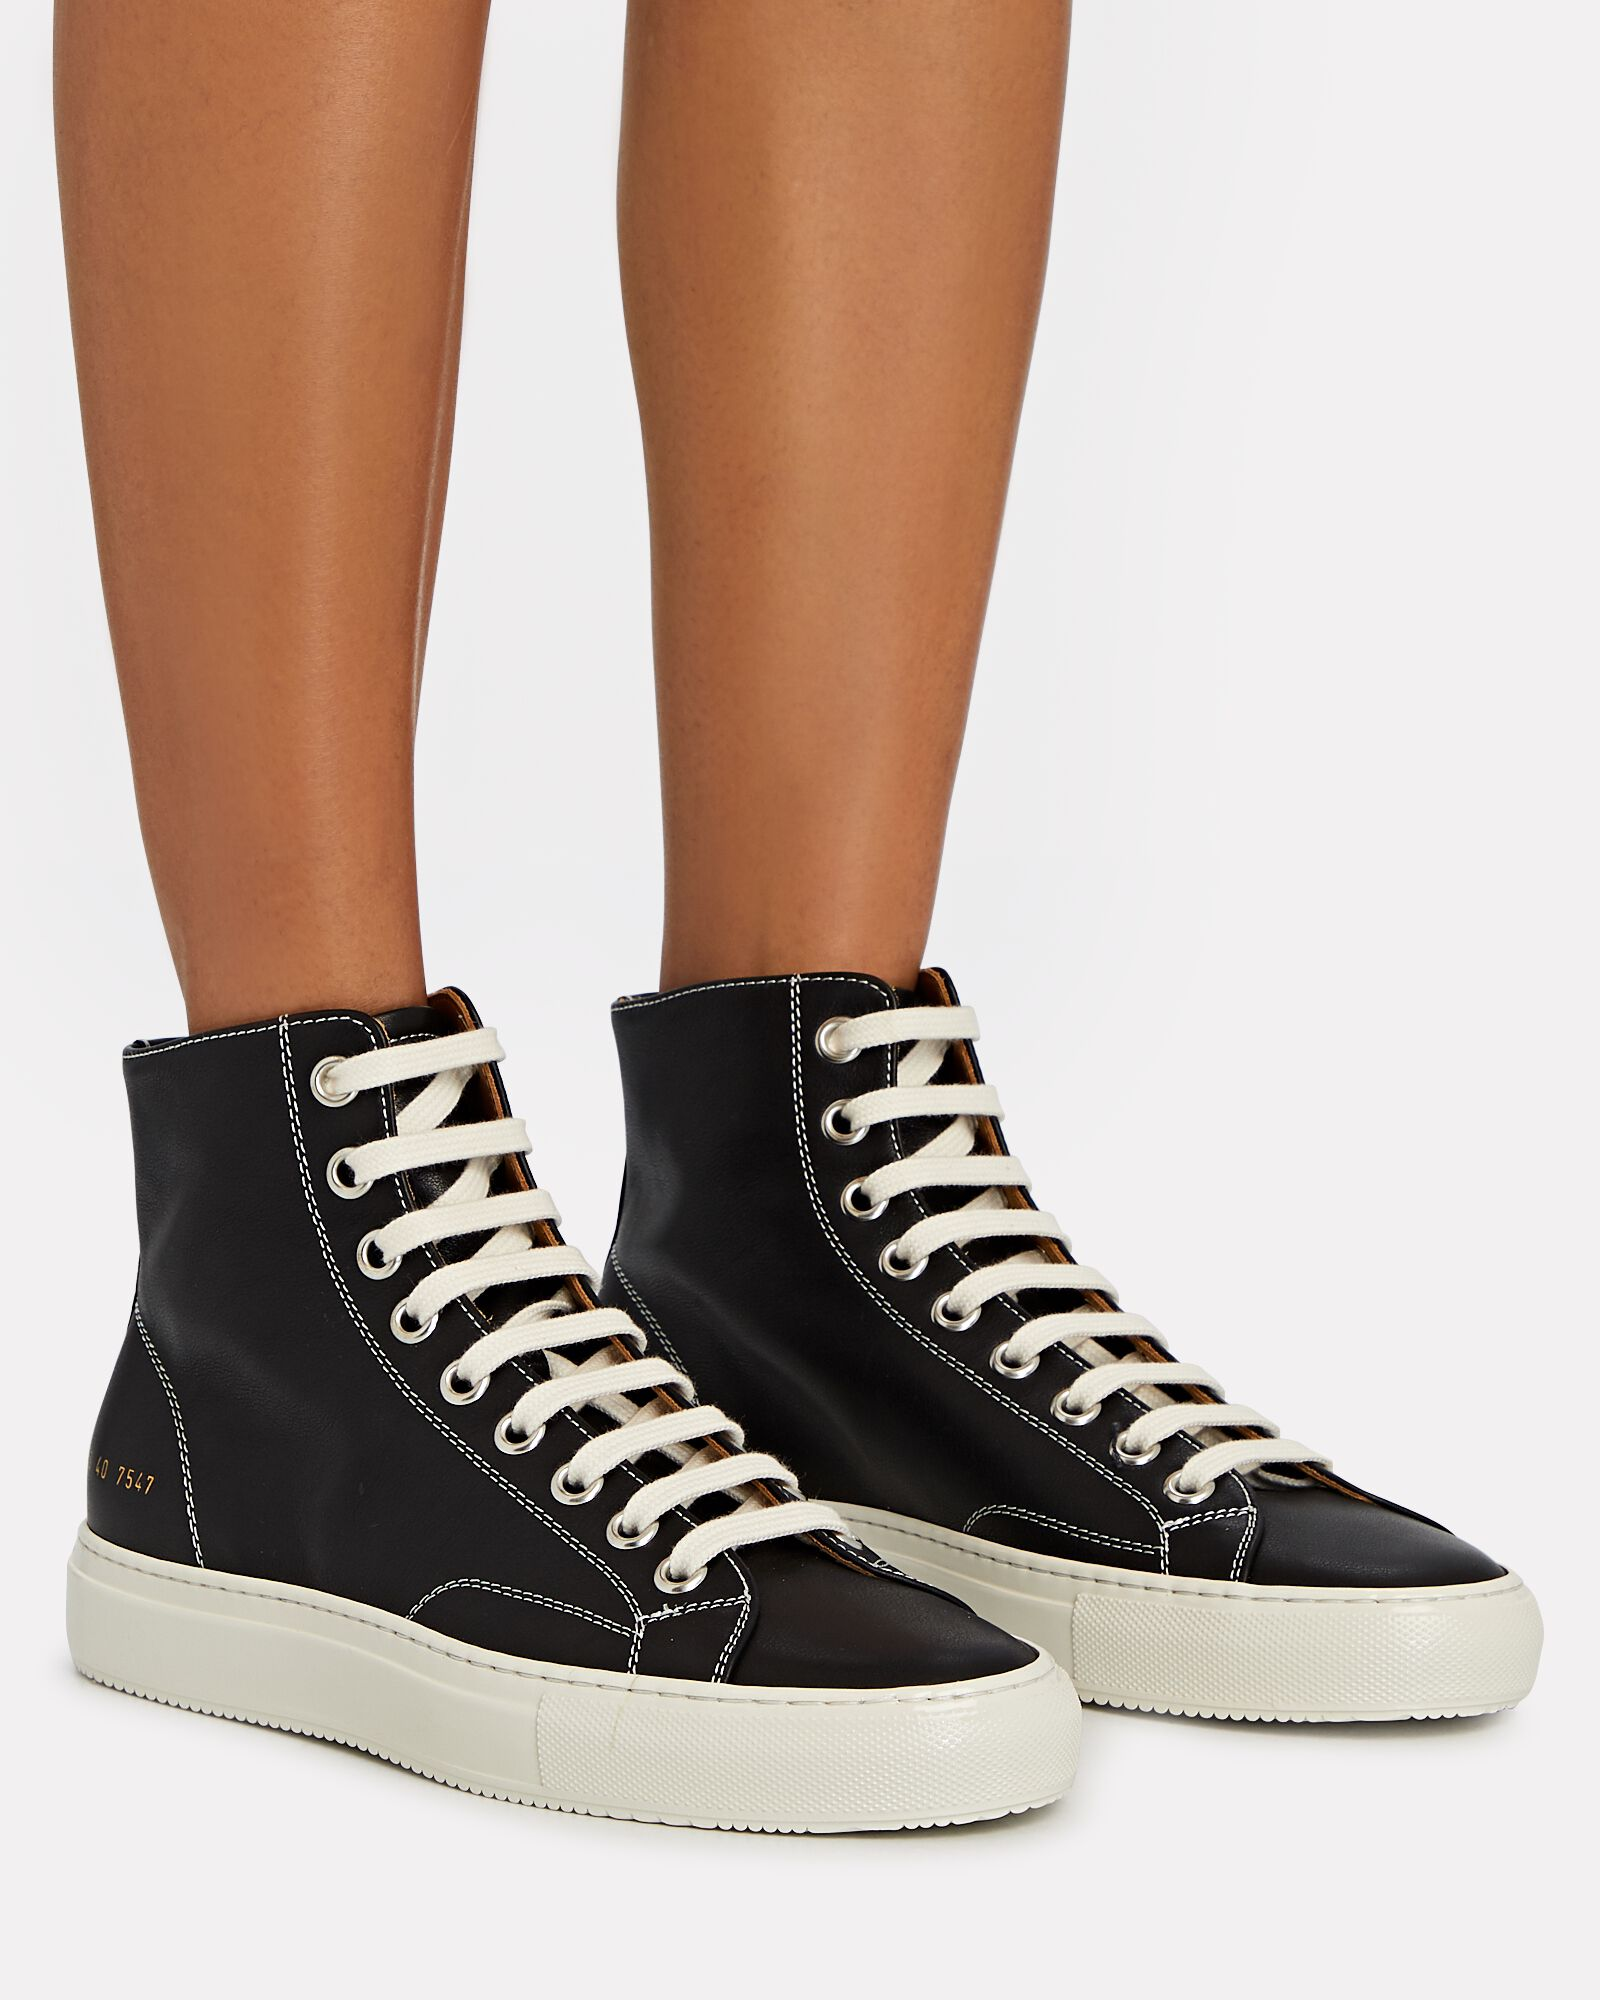 Tournament High-Top Leather Sneakers, BLACK, hi-res